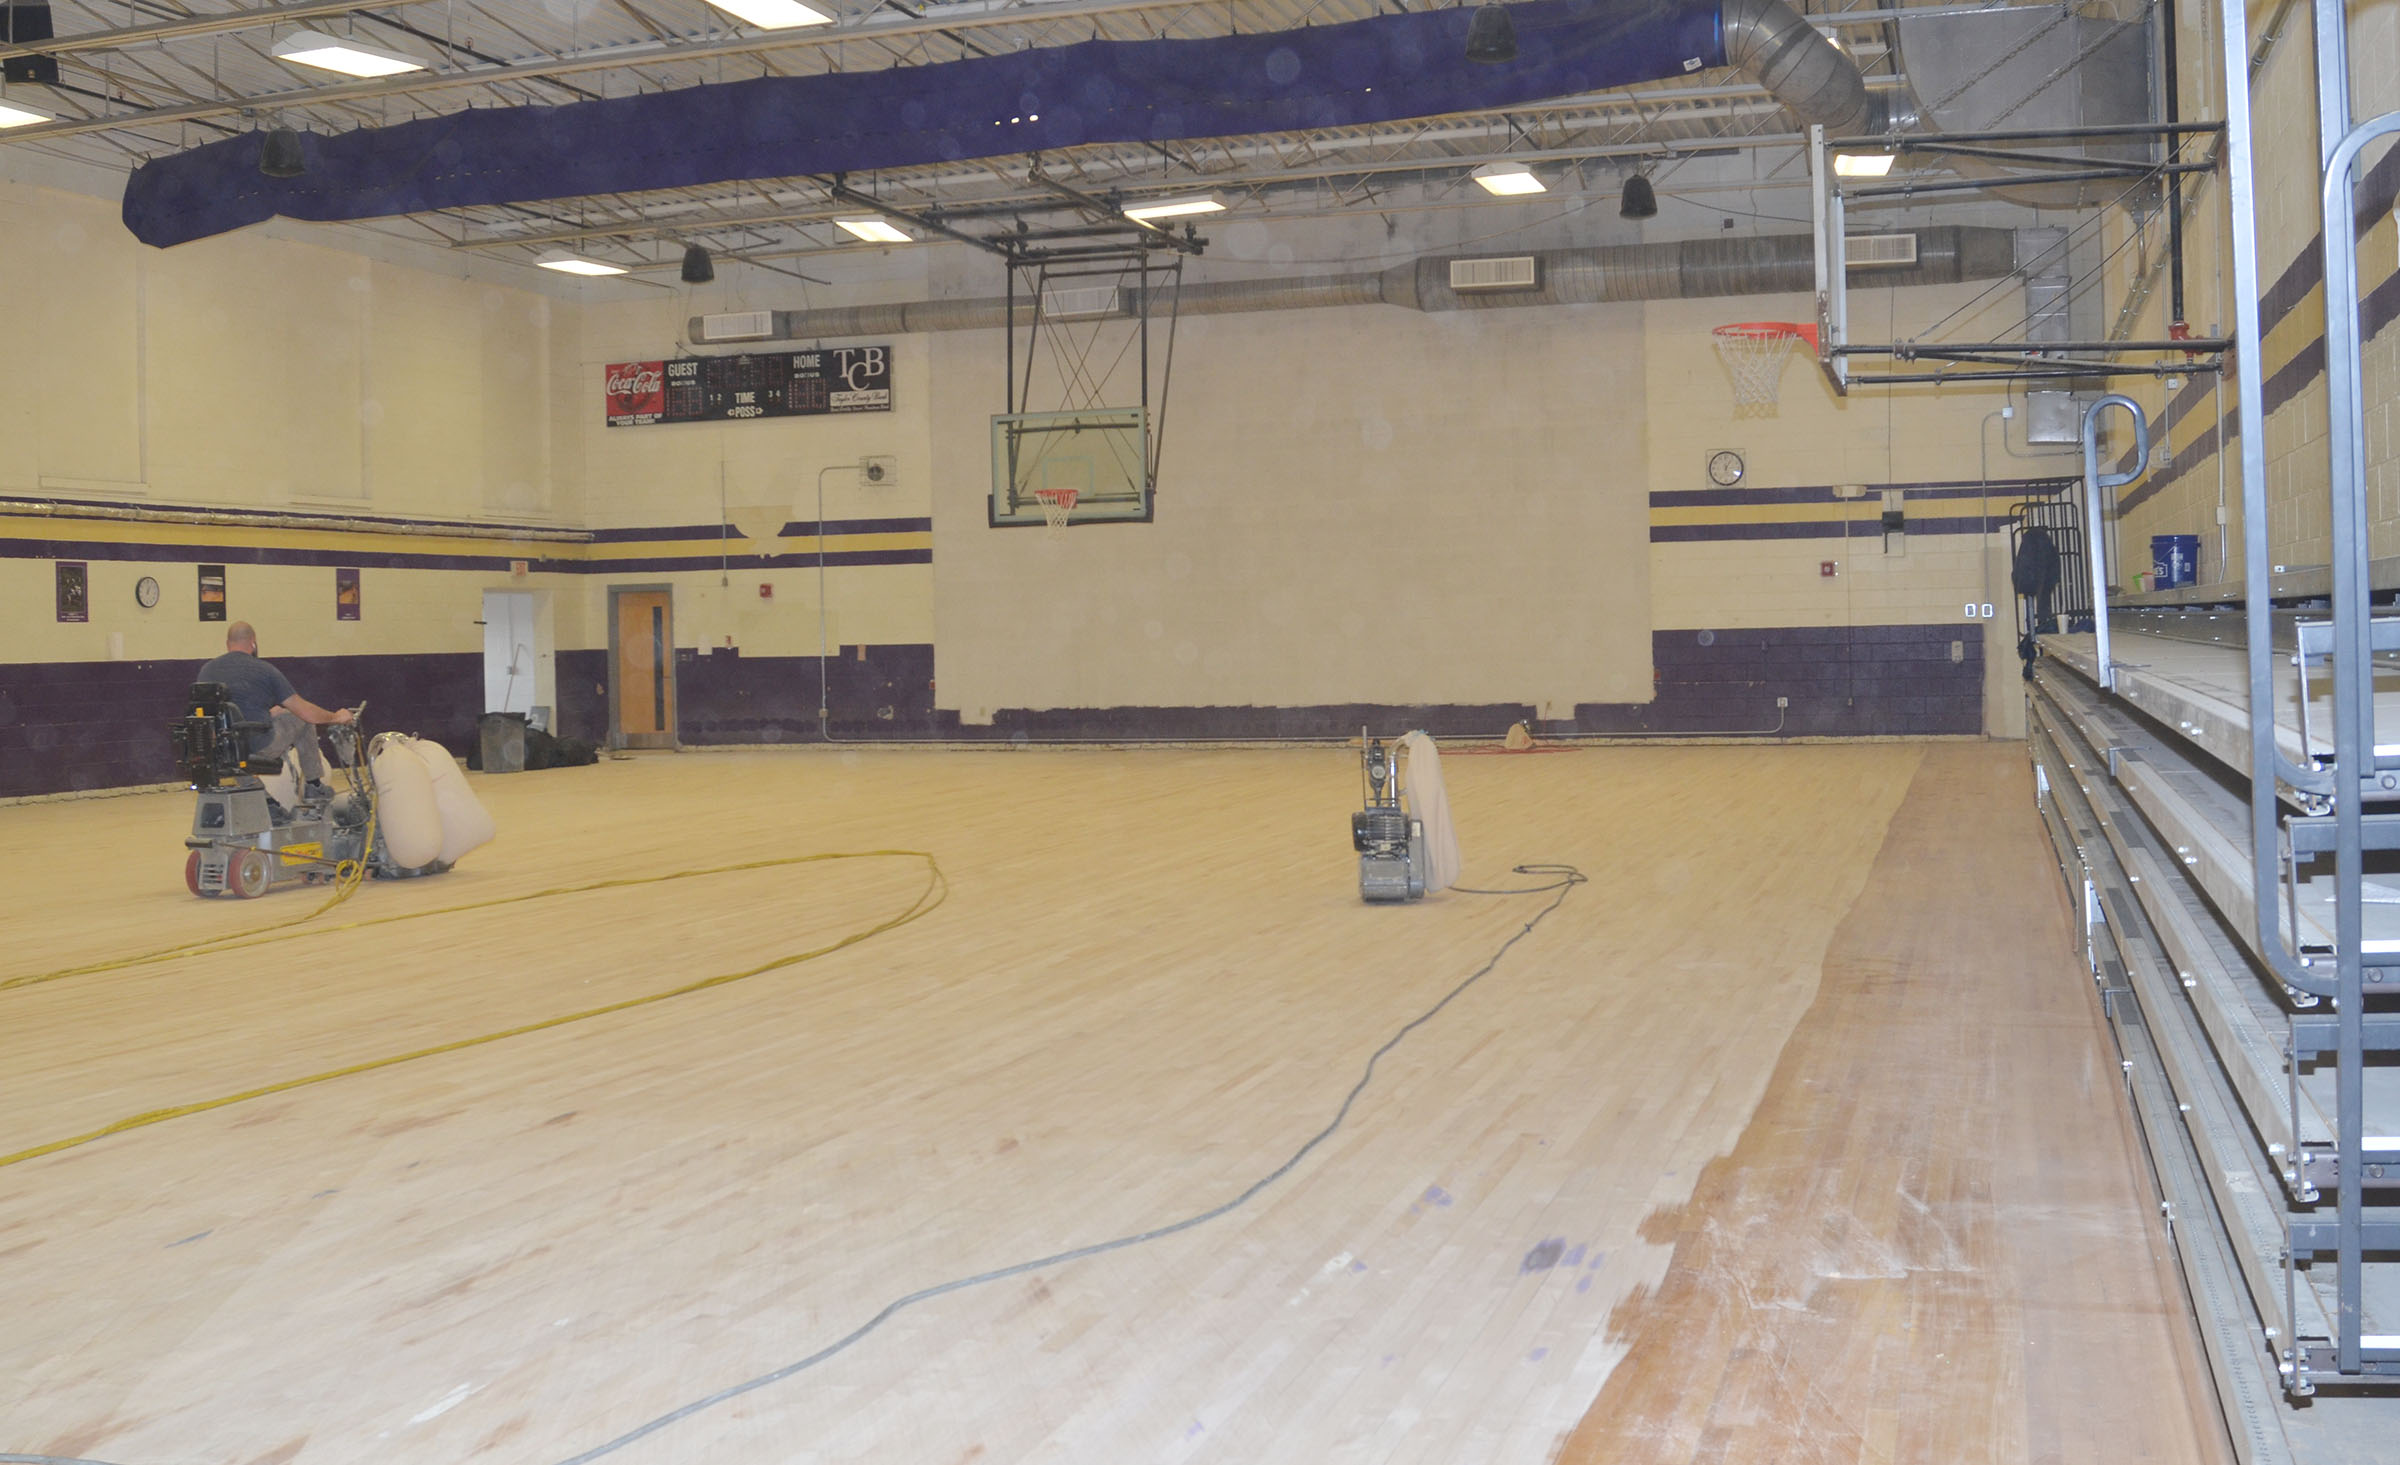 Workers have sanded the CES gym floor and refinished it.